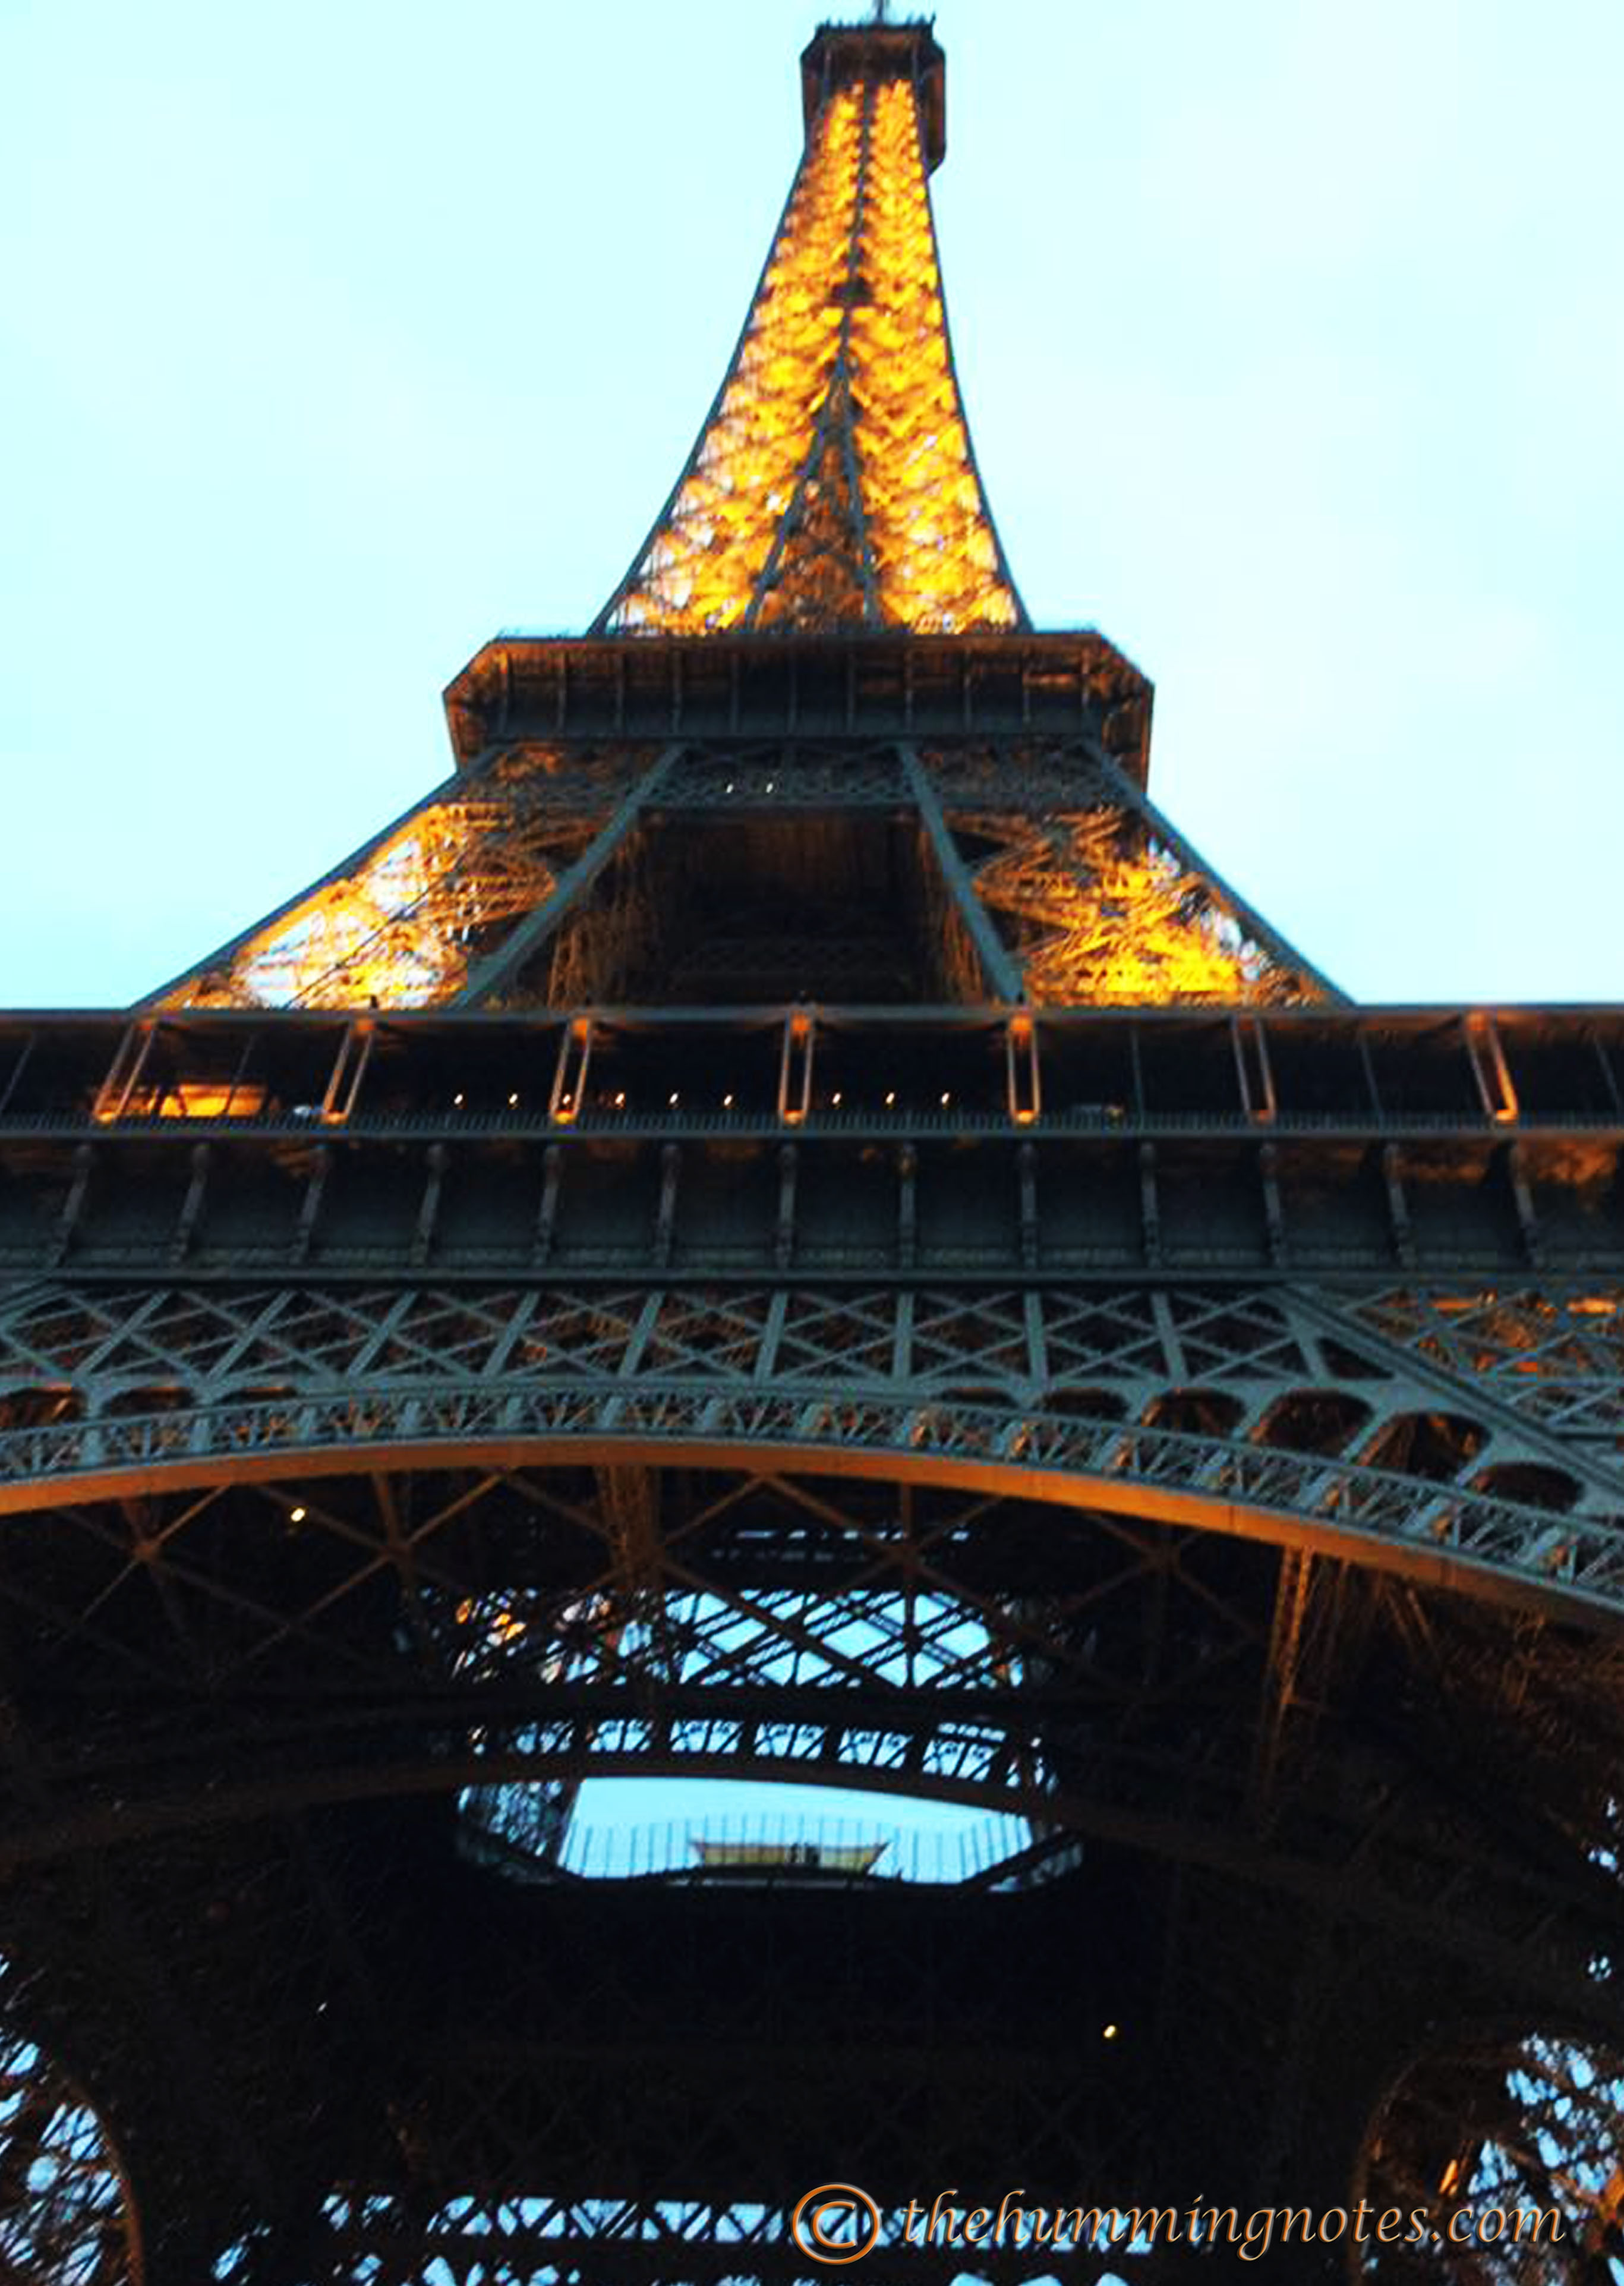 Eiffel Tower - a dream, shocking and French heritage